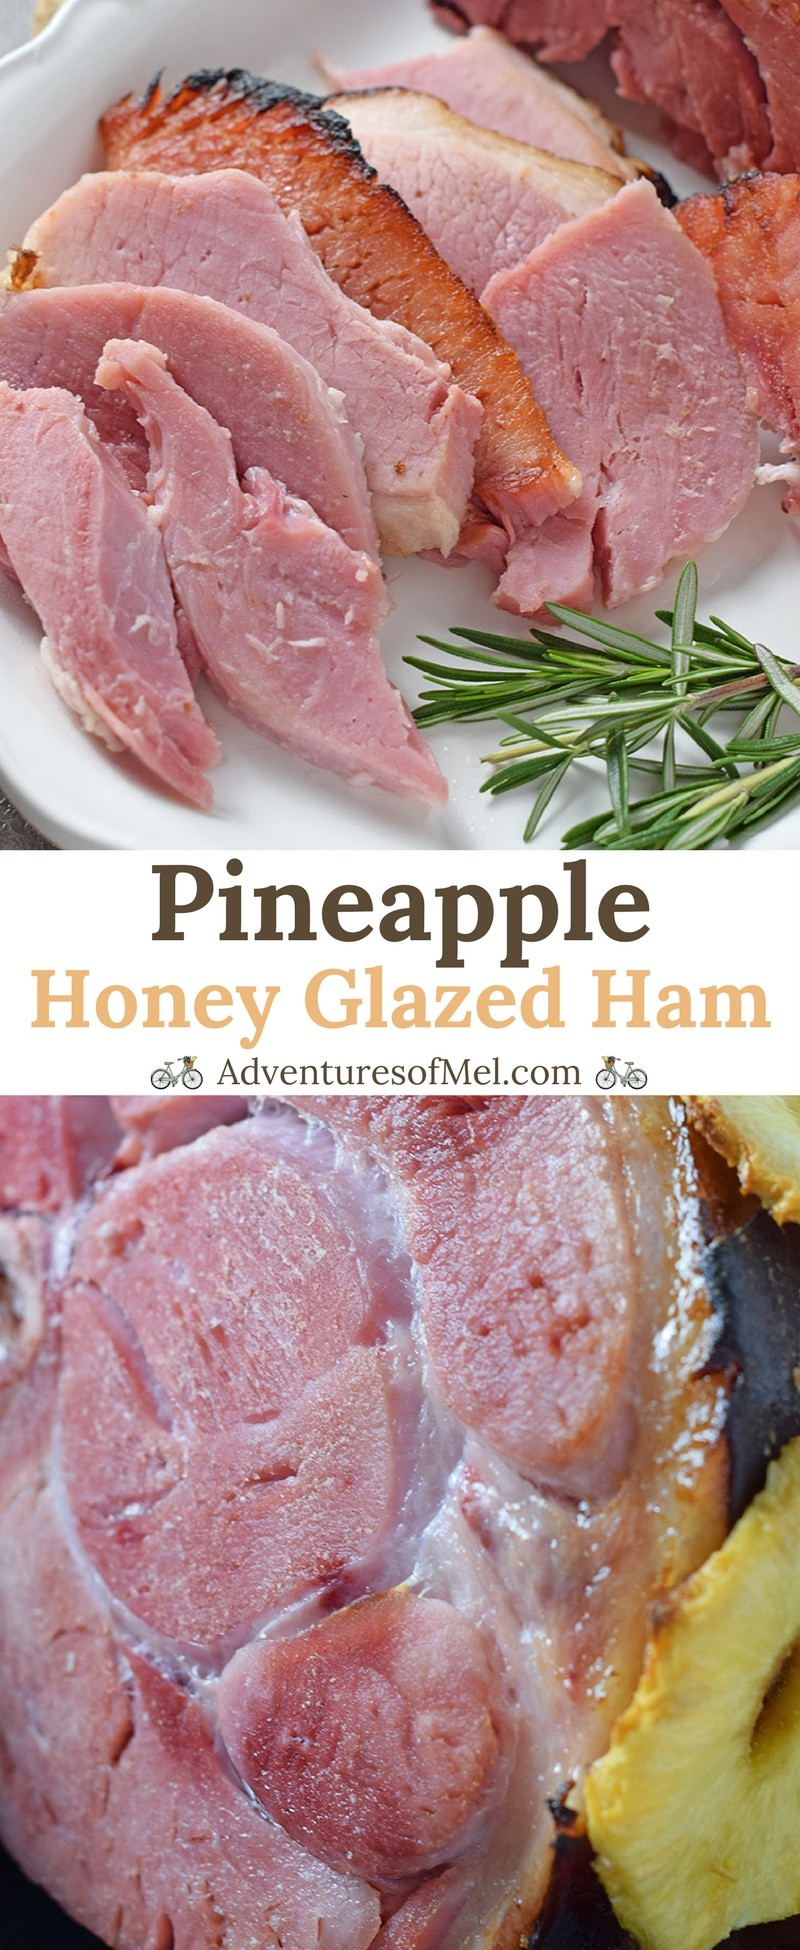 Pineapple Honey Glazed Ham recipe. How to make a perfectly cooked, moist, delicious ham for dinner and holiday celebrations.